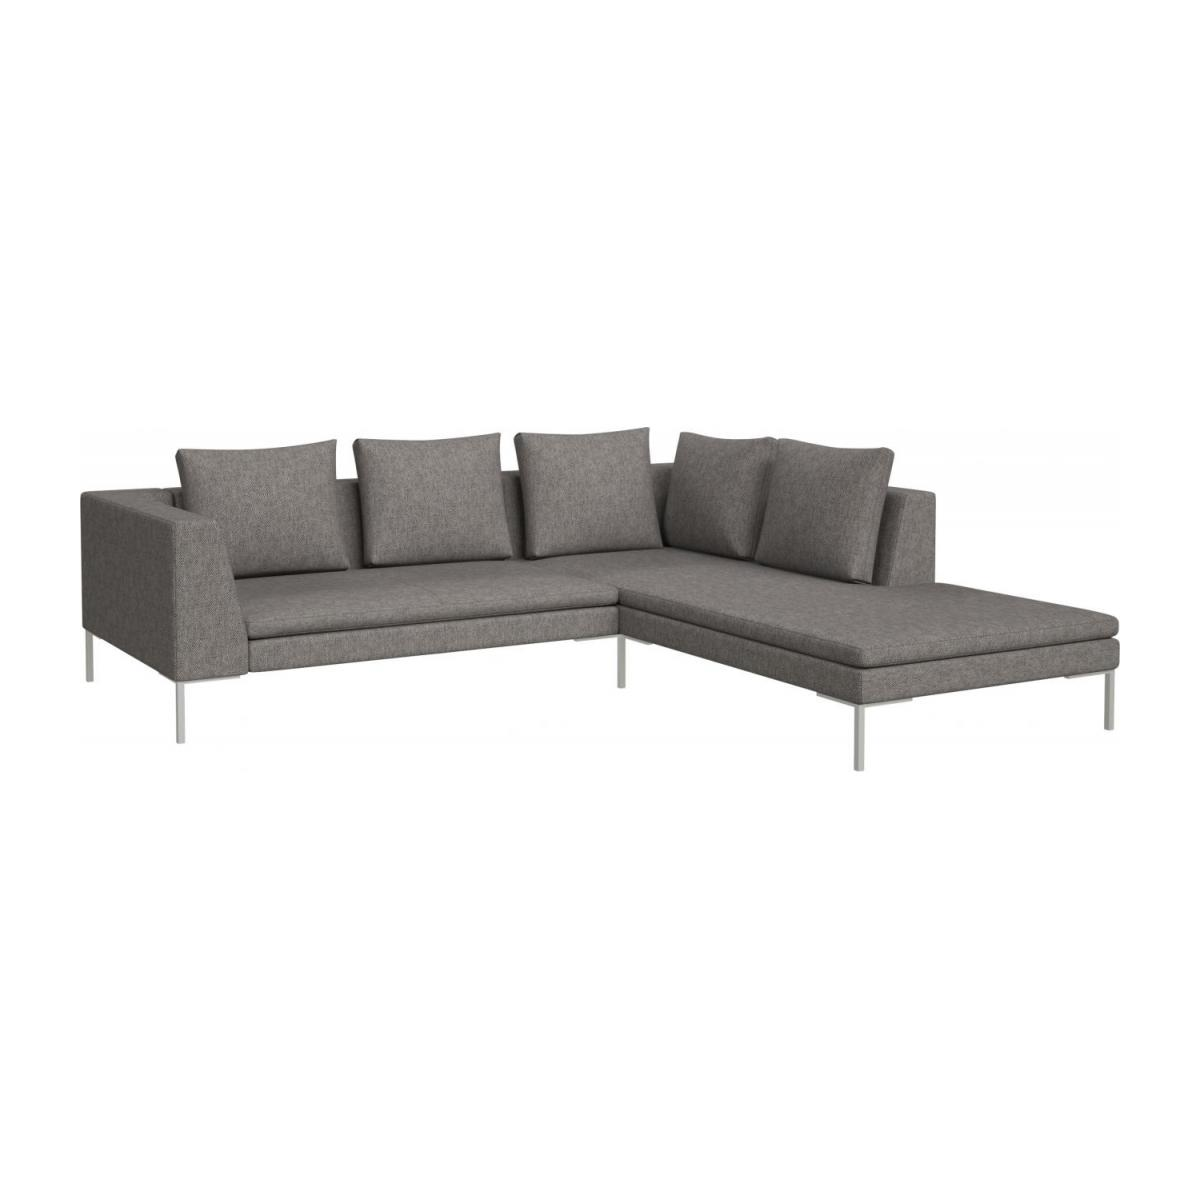 black sofa chaise longue baby montino 2 seater with on the right in